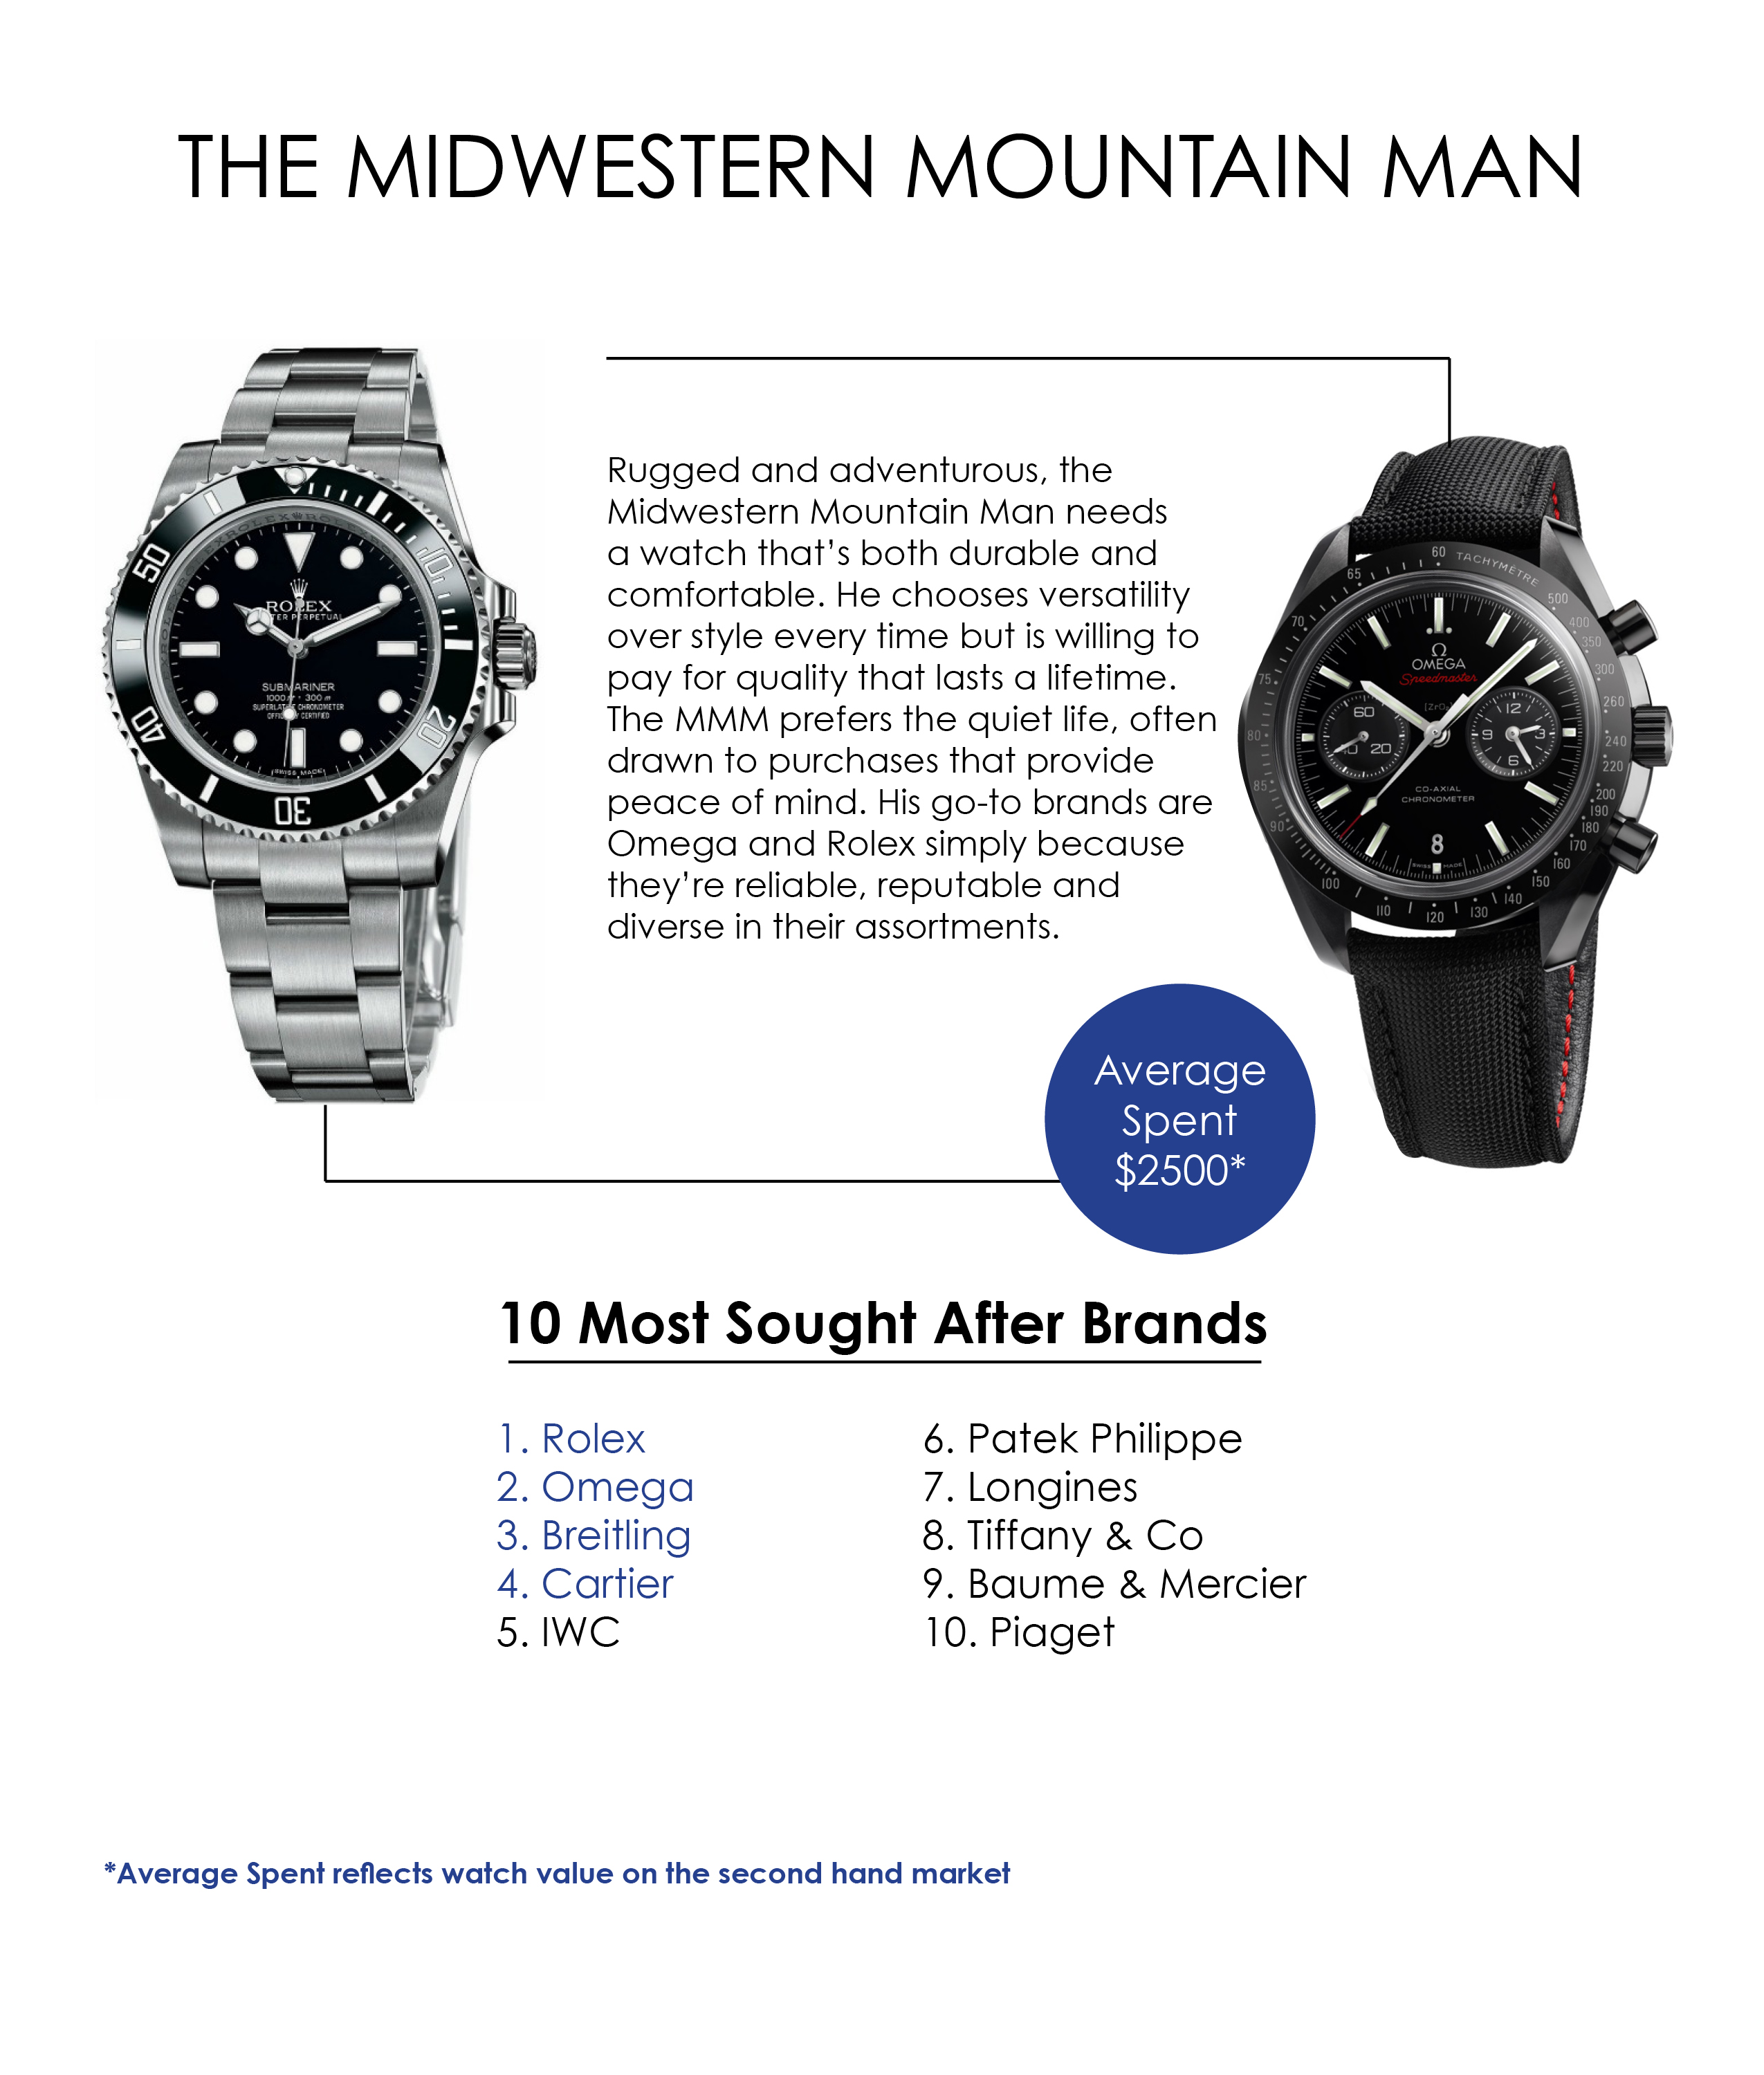 Midwestern Mountain Man watches